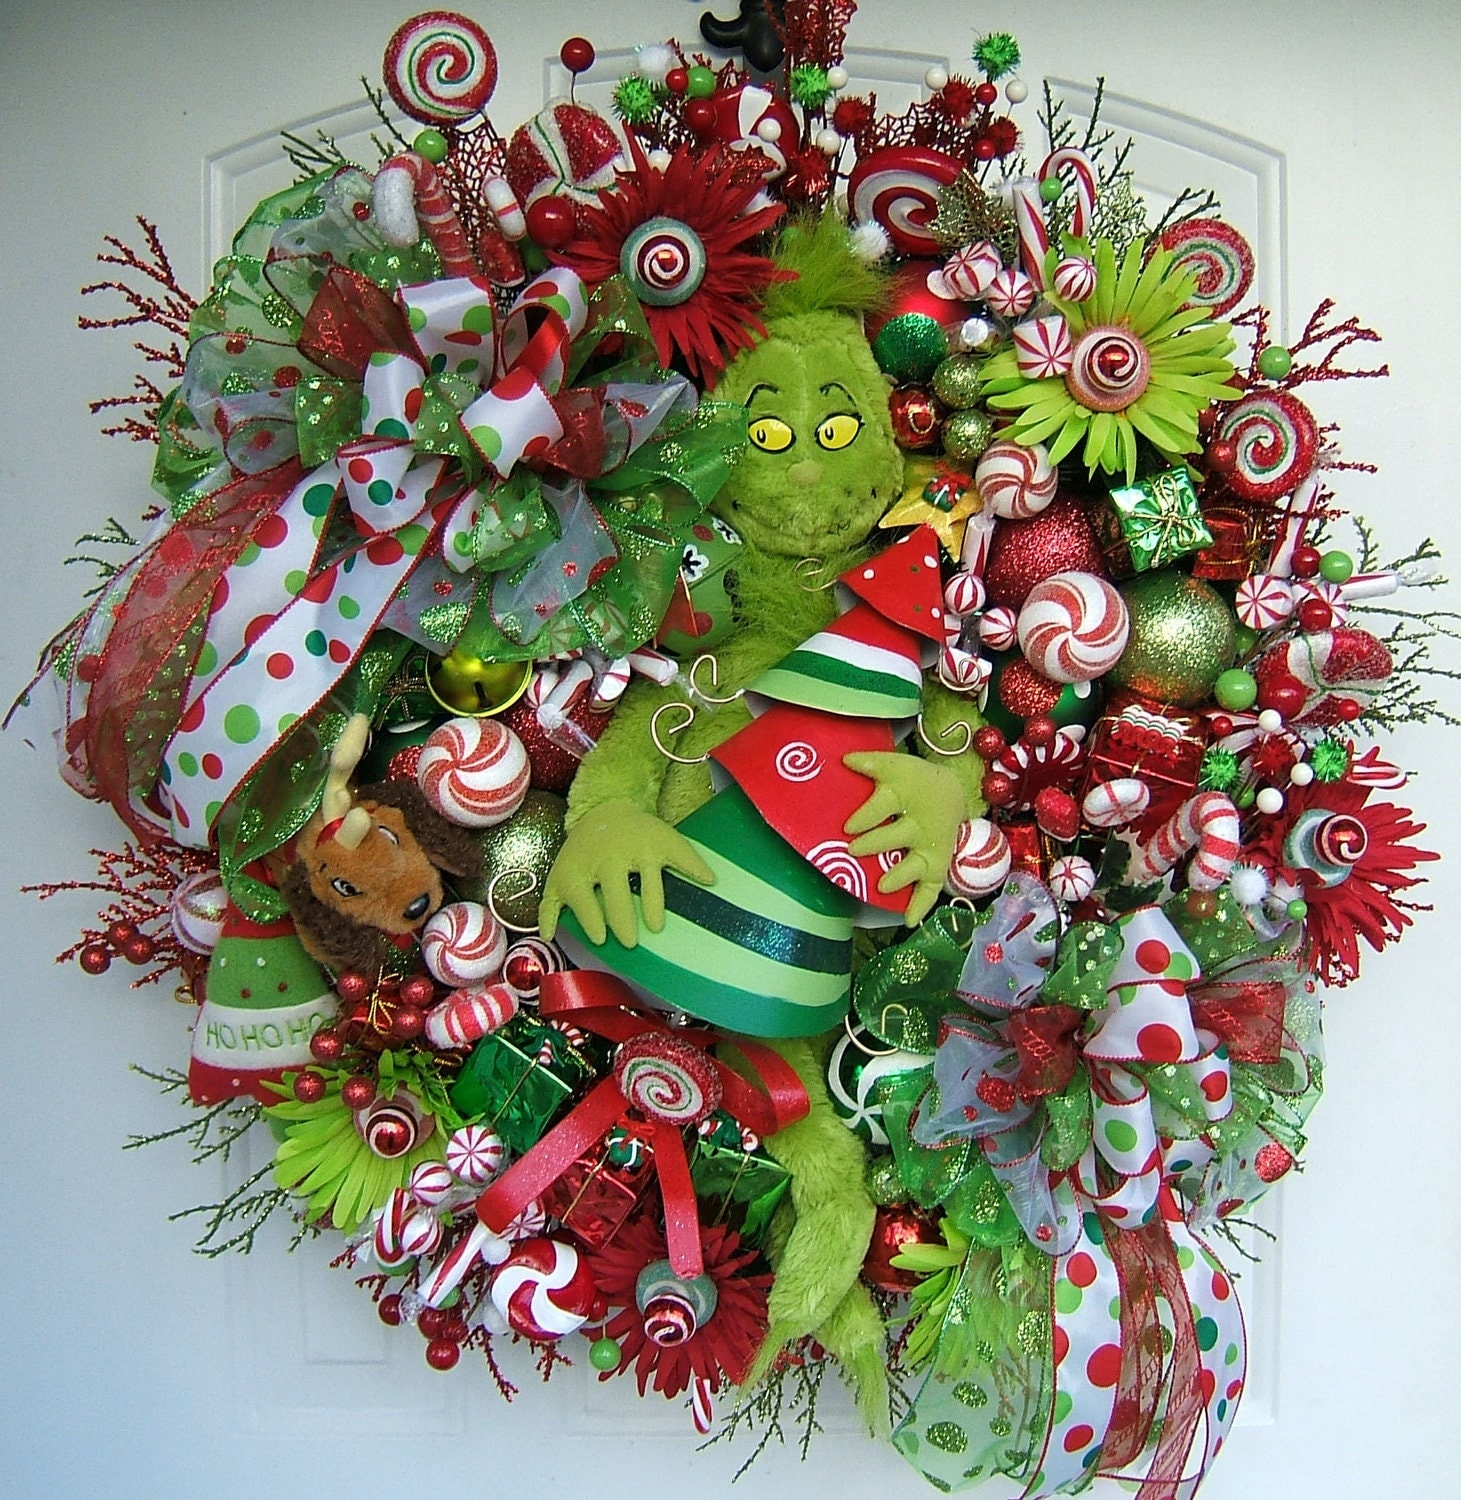 Christmas Decorations The Grinch: Grinch Christmas Wreath Grinch Stole Christmas Grinch And